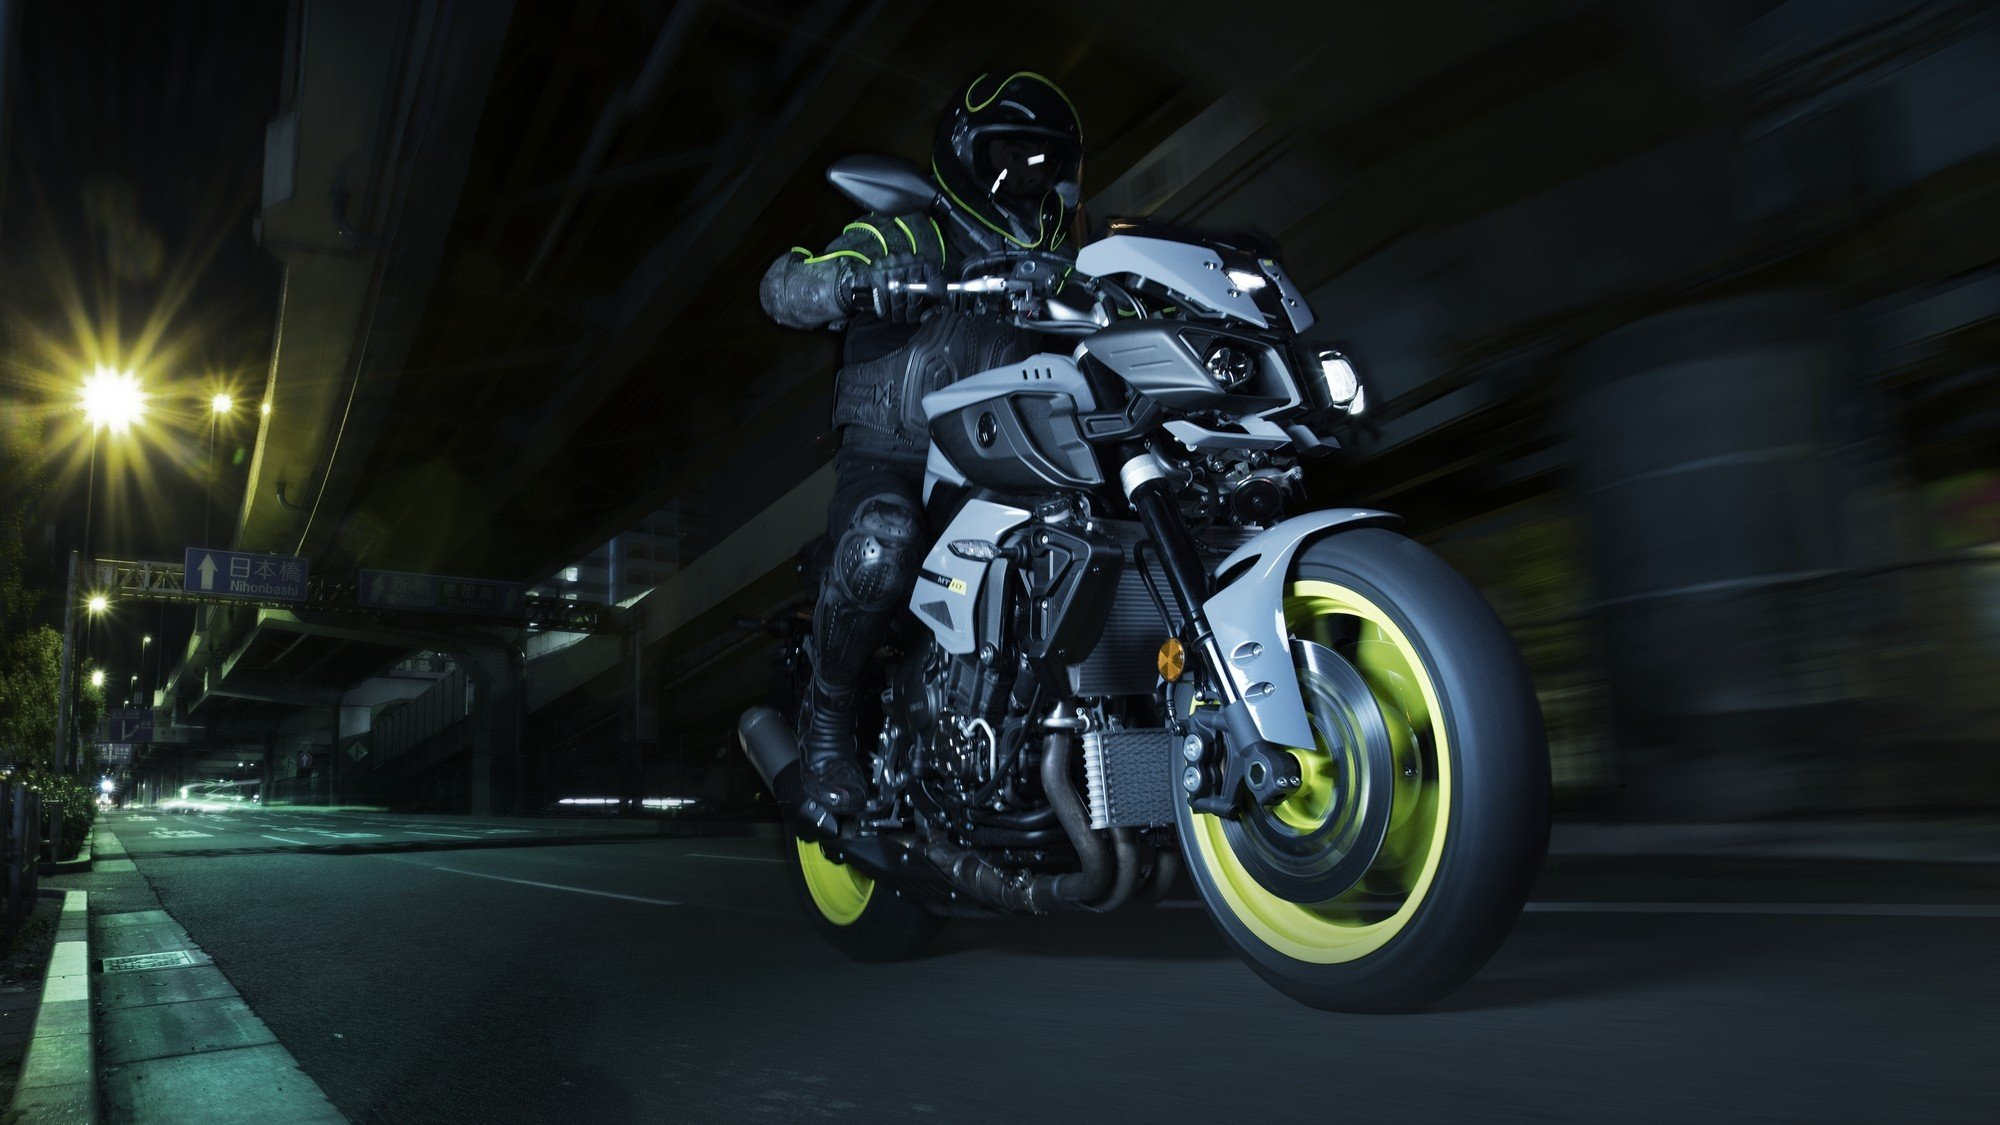 2016 yamaha mt 10 ray of darkness motorcycles wallpaper 2000x1125 838317 wallpaperup. Black Bedroom Furniture Sets. Home Design Ideas